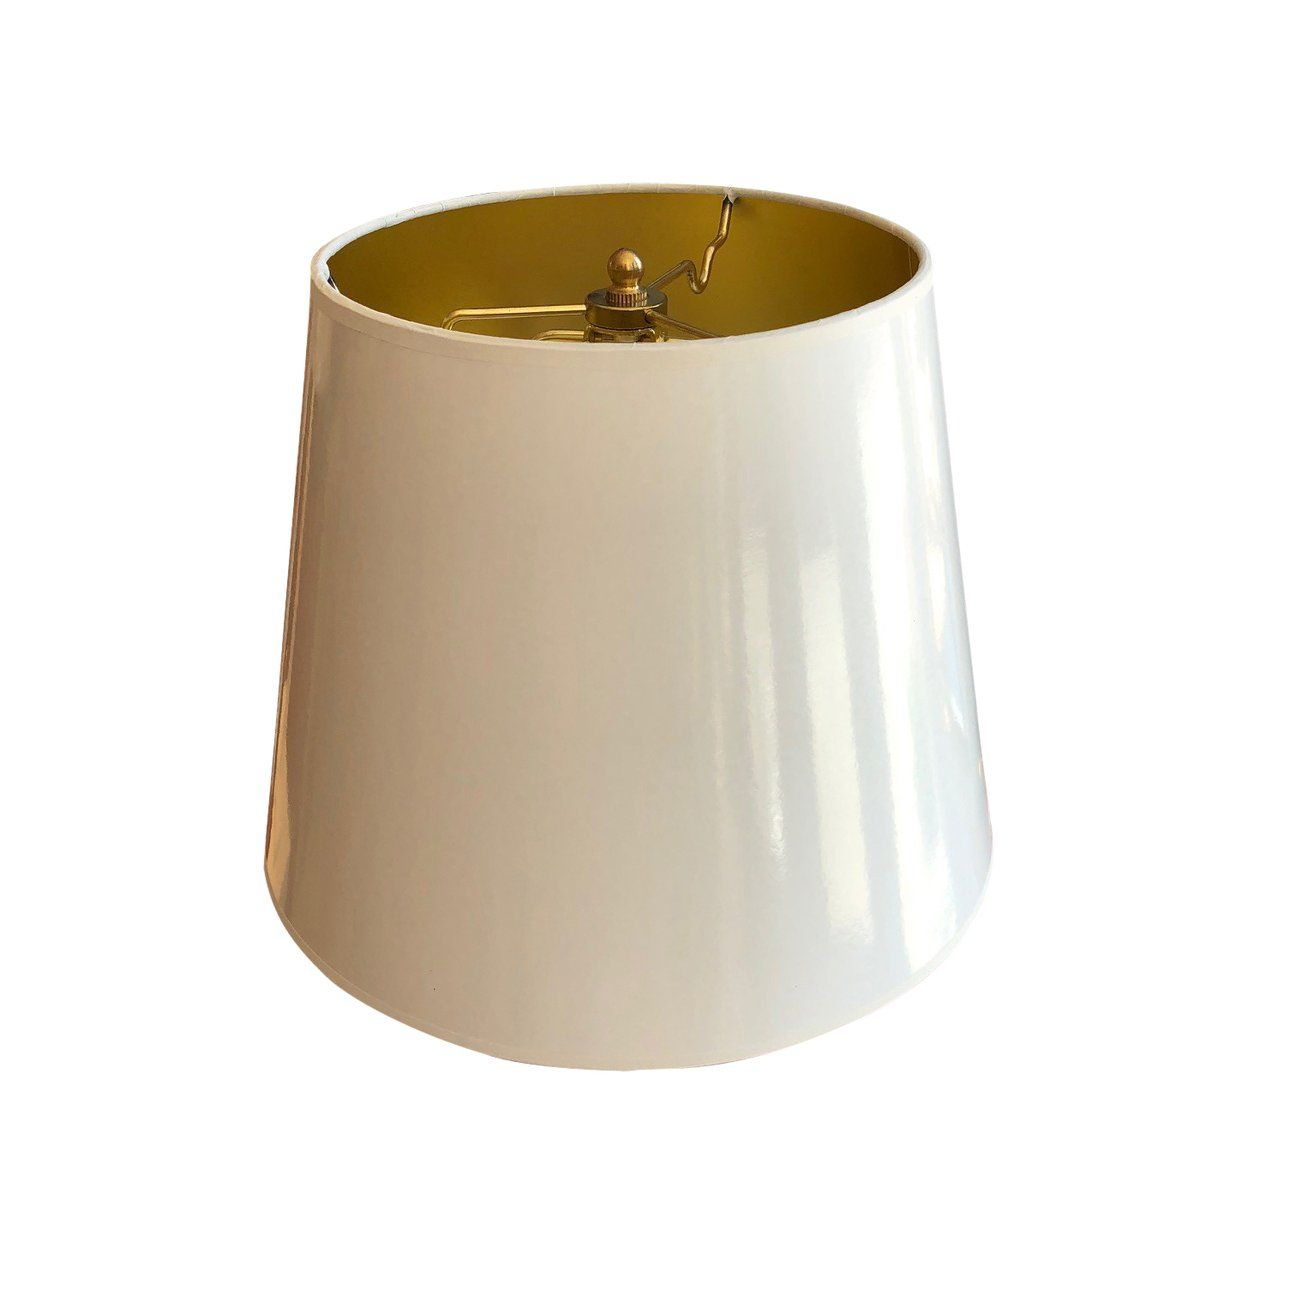 White Lacquer Lampshades With Gold Lining Lampshades Gold Line Paint Shades